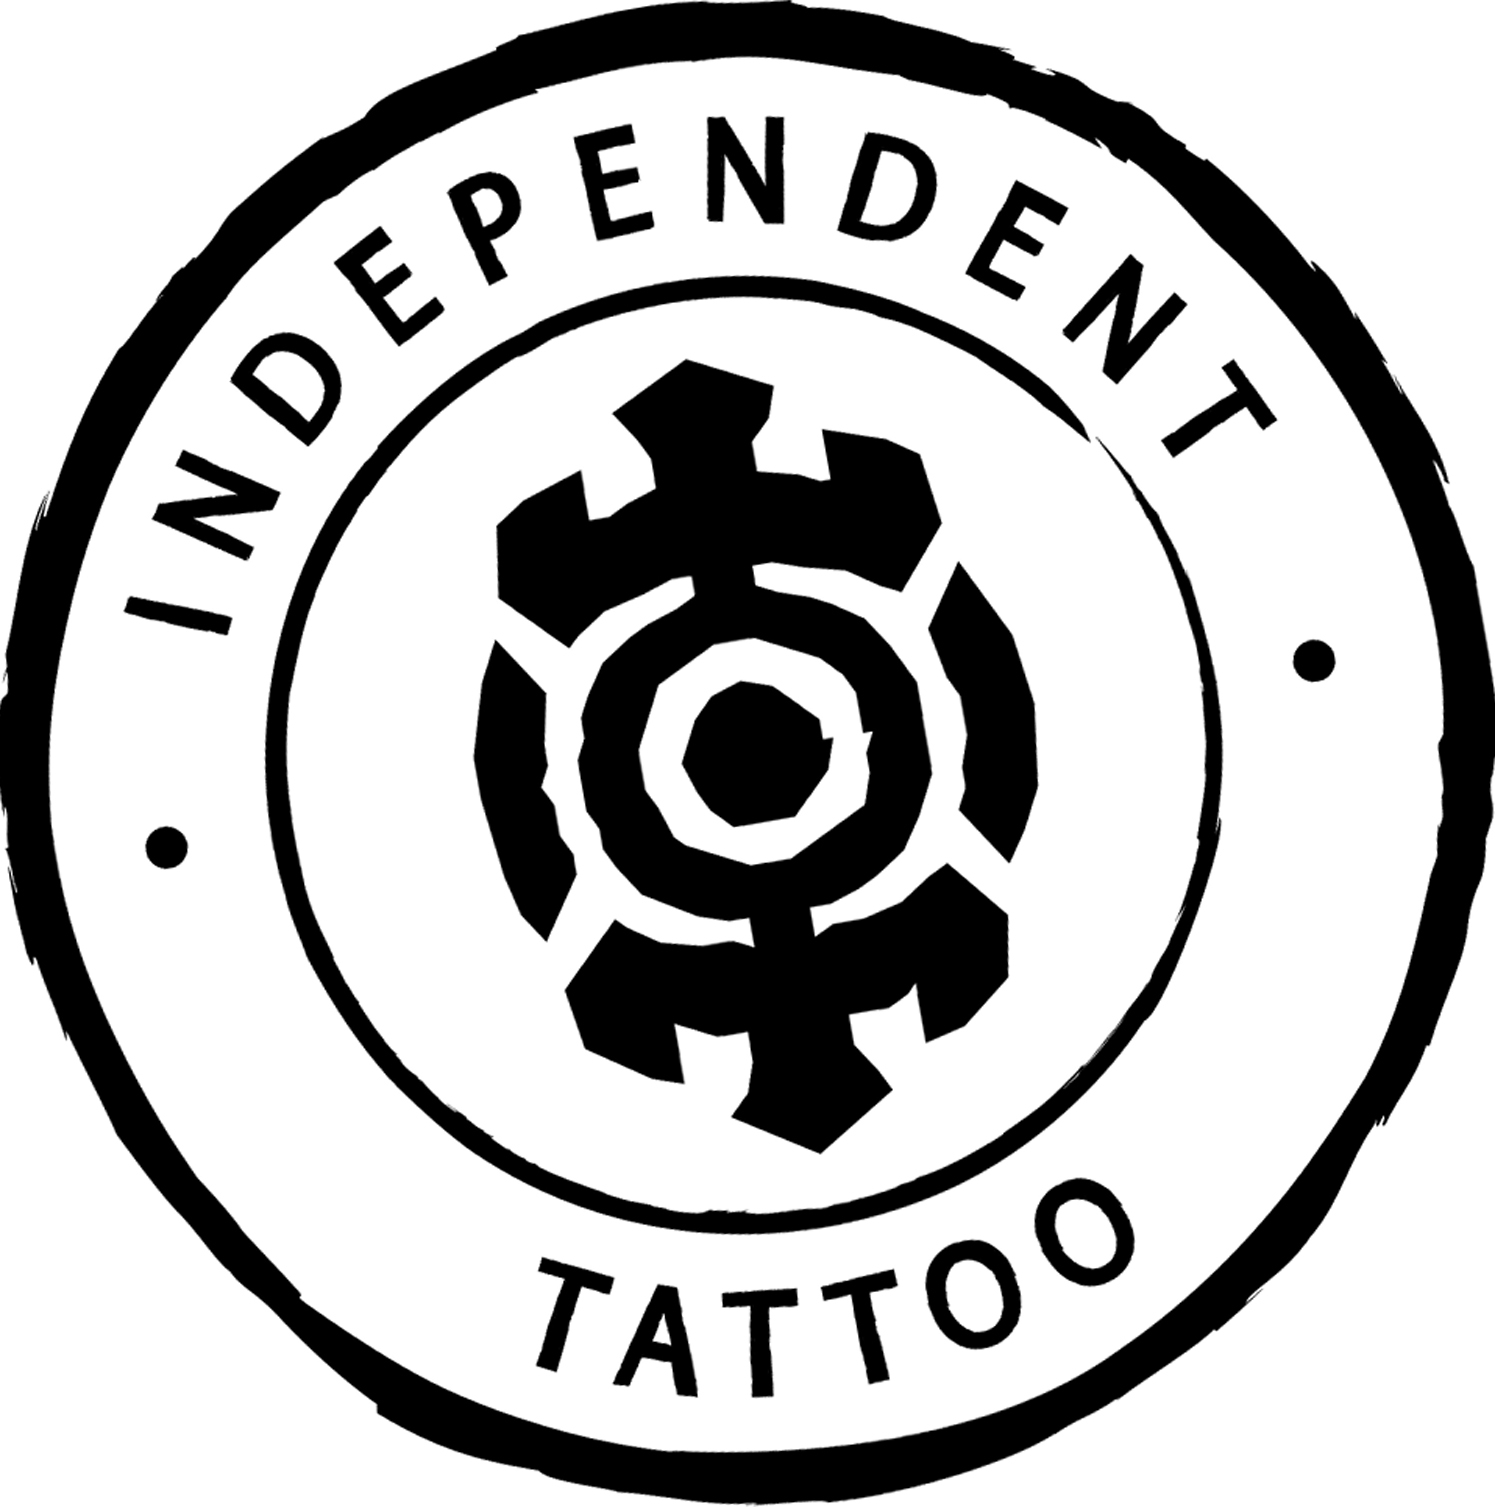 independent_tattoo_logo.jpg